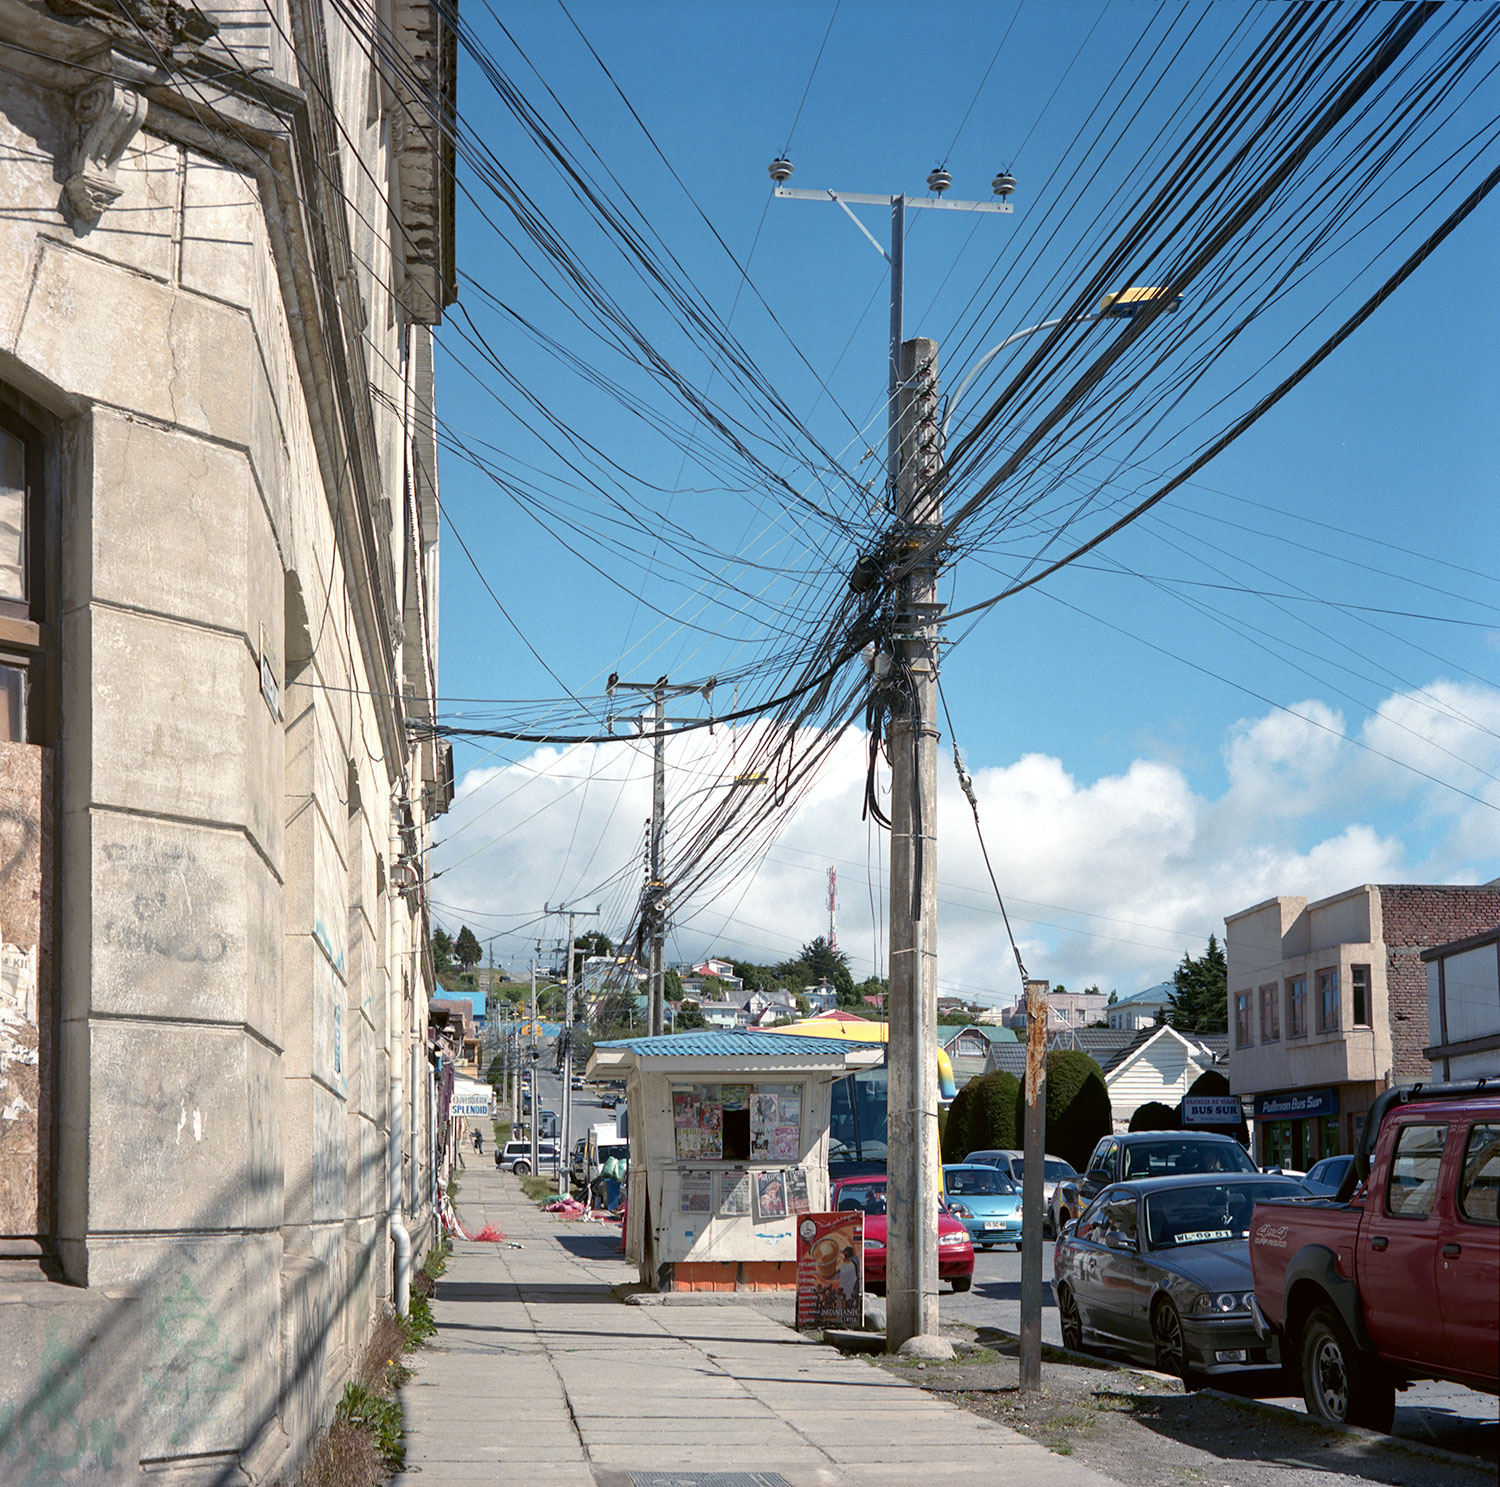 Sidewalk (Electrical Post) - Punta Arenas, Chile, South America, 2012